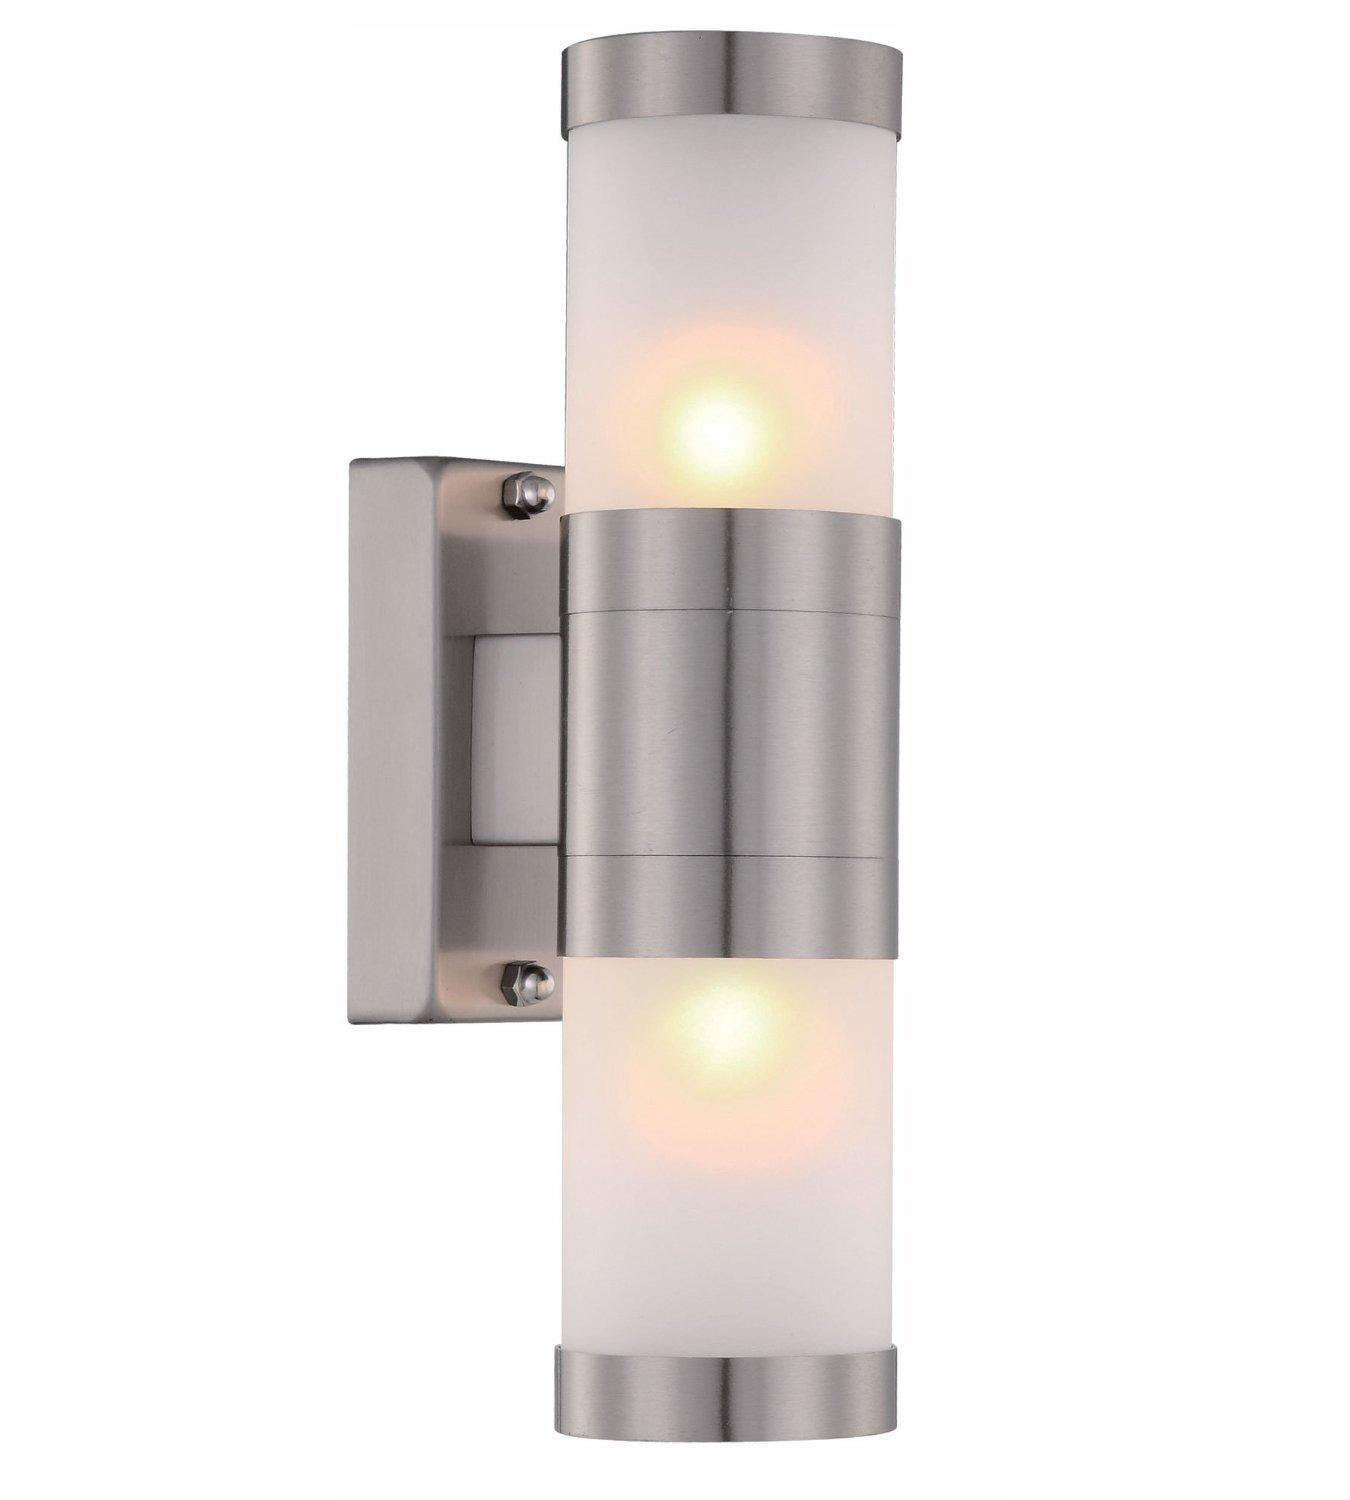 Zenon Lighting  sc 1 st  Amazon UK & Stainless Steel Up Down Wall Light Frosted Glass Cover IP44 Garden ... azcodes.com